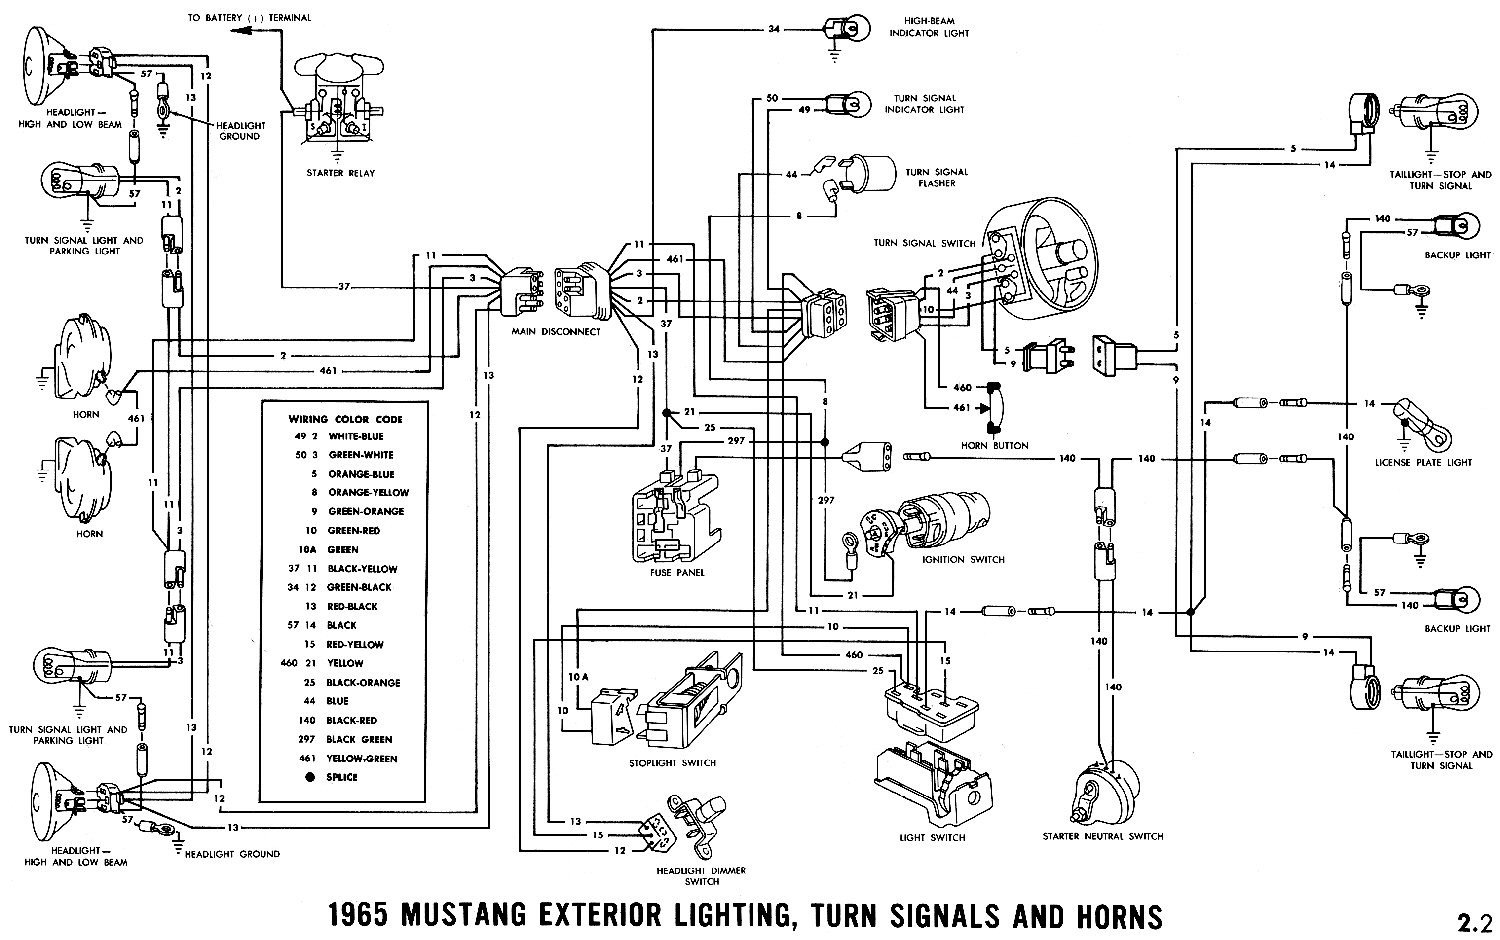 1965 mustang ignition switch wiring diagram Collection-1966 Mustang Wiring  Diagram New 1968 Mustang Wiring